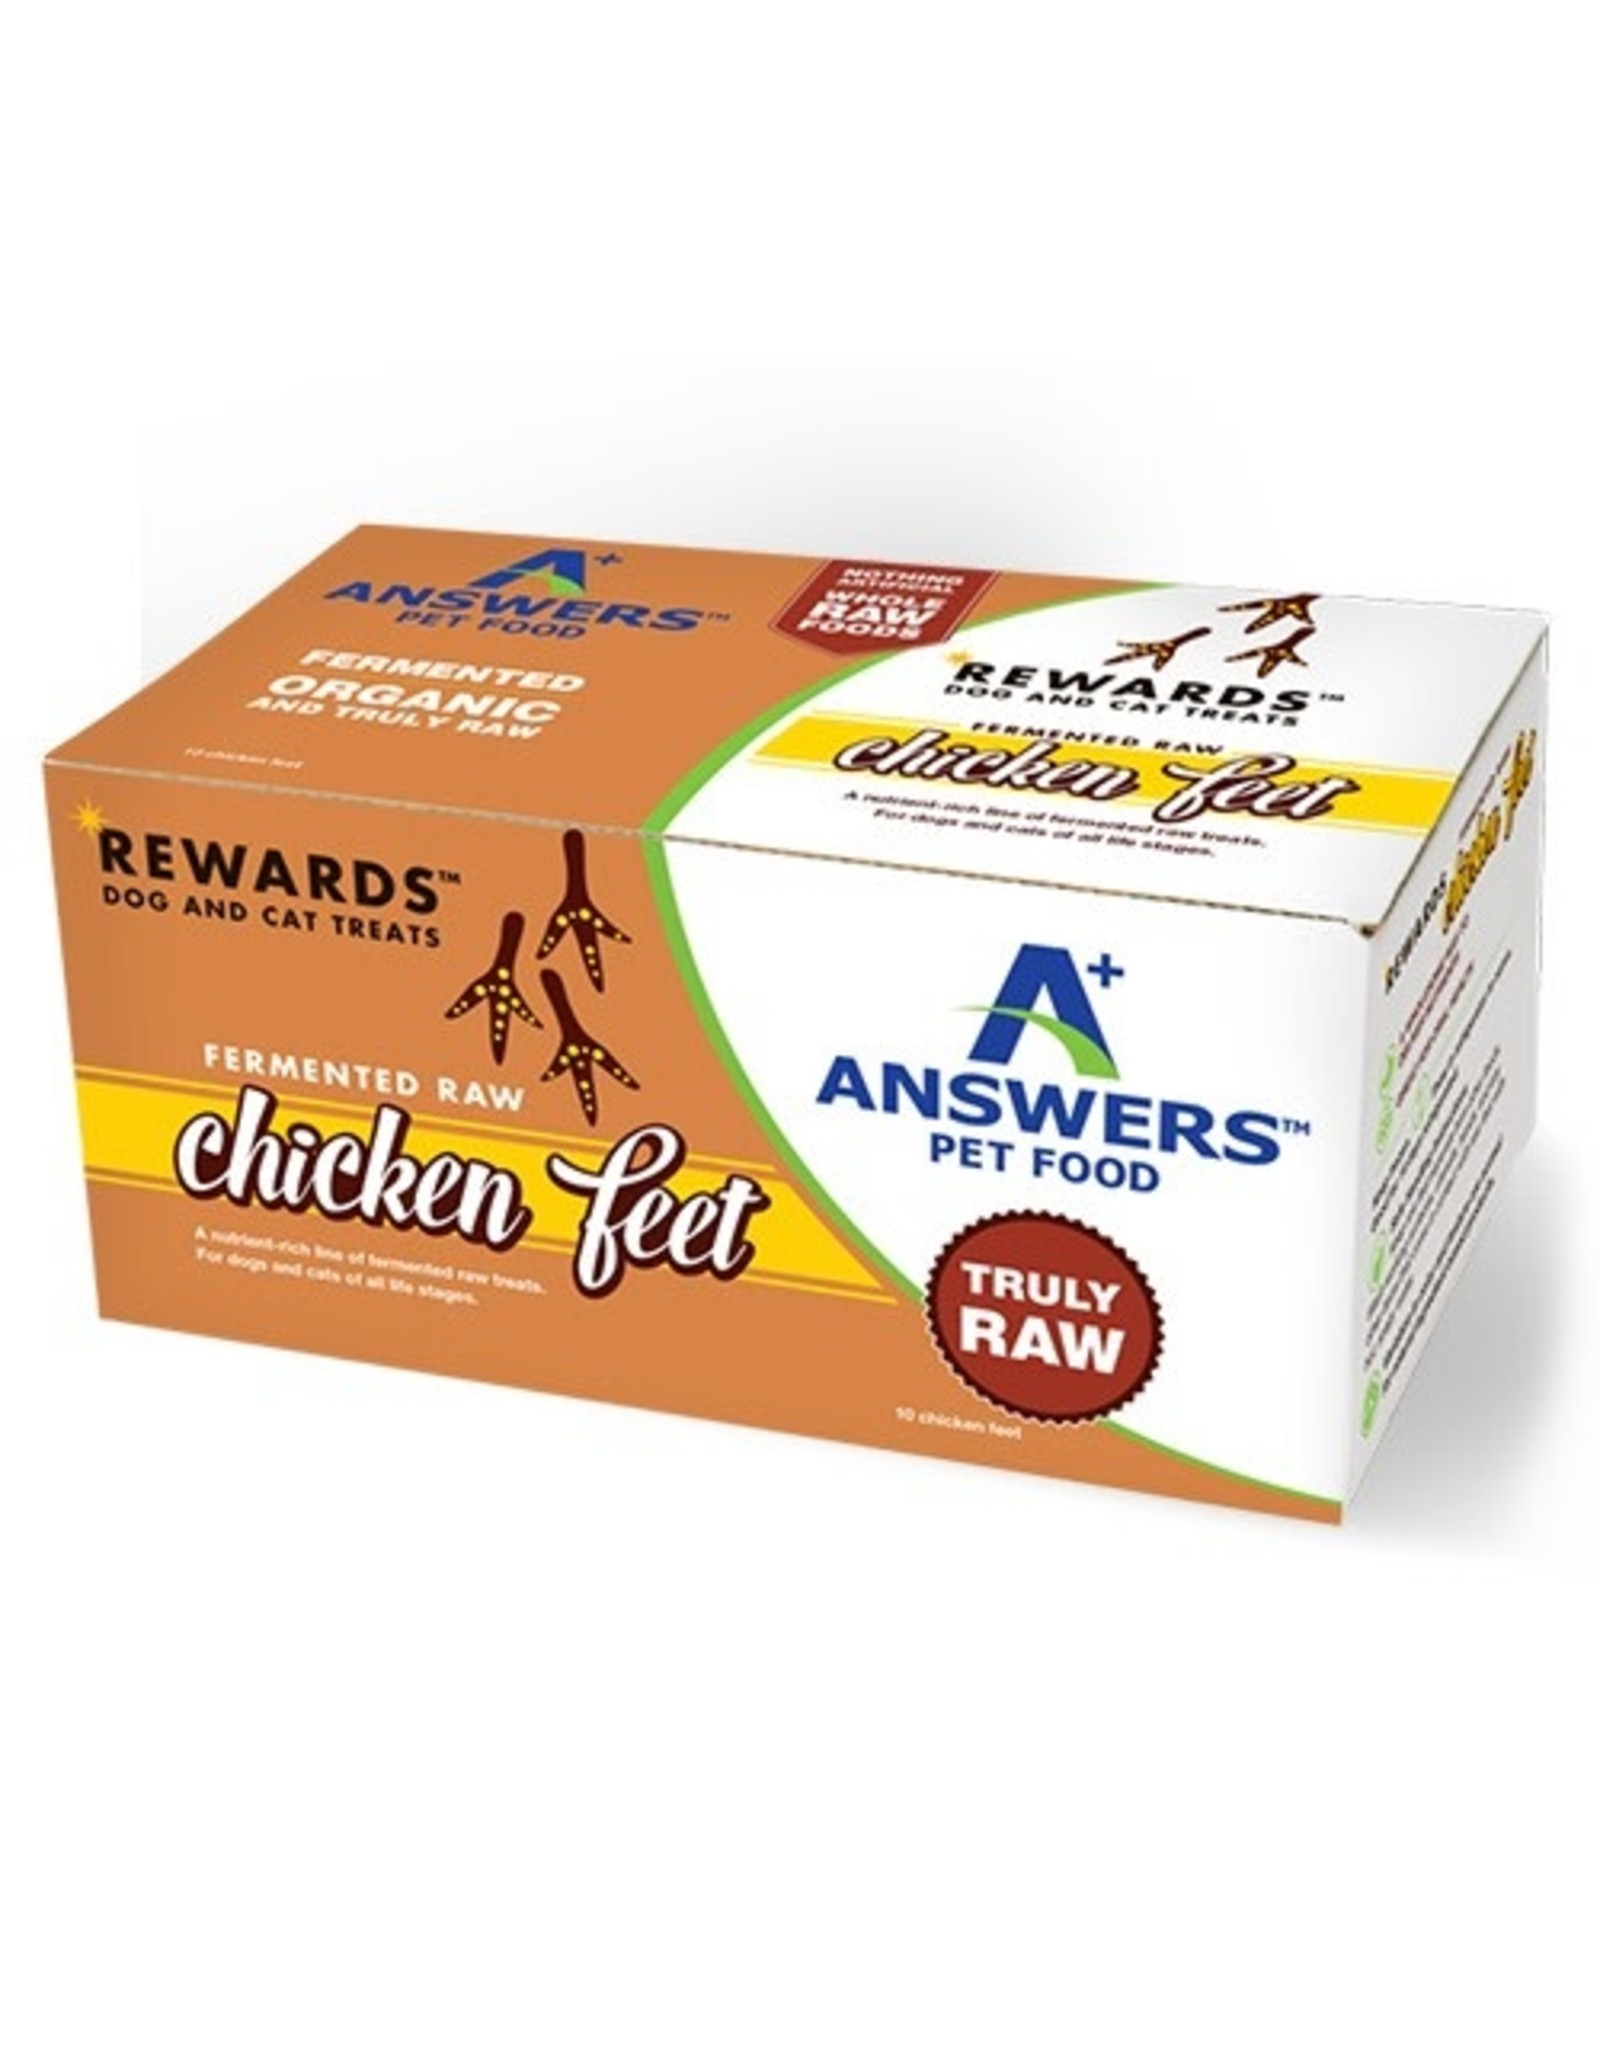 Answers Pet Food ANSWERS FERMENTED ORGANIC RAW CHICKEN FEET 10-COUNT